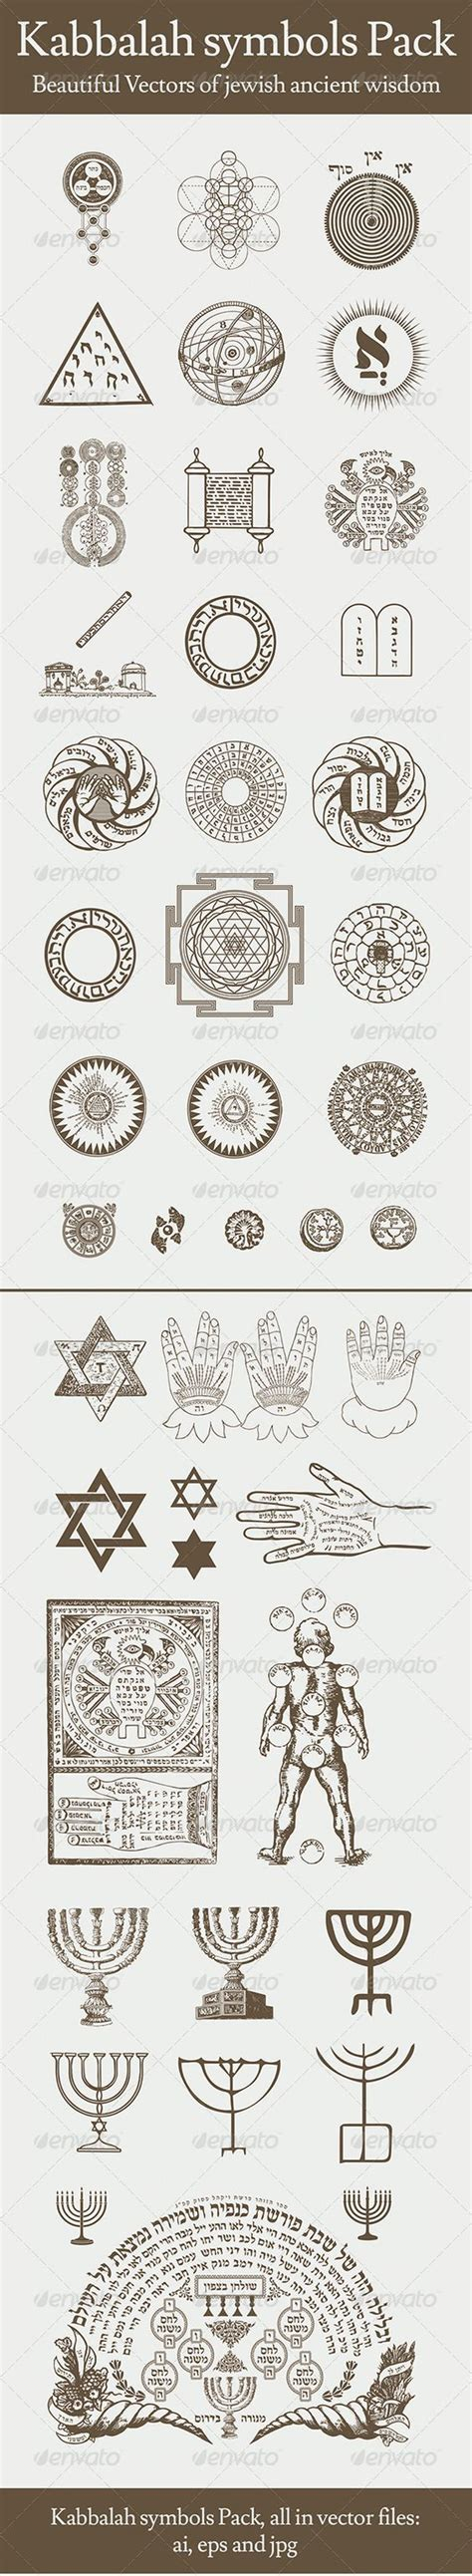 41 Best Kabbalah  Tree Of Life Images On Pinterest. Spinal Cord Injury Signs Of Stroke. Microwave Signs Of Stroke. Hypophosphatemia Signs. Detection Signs. Rose Cottage Signs. Teenagers Signs Of Stroke. Safety Security Signs Of Stroke. Pelican Signs